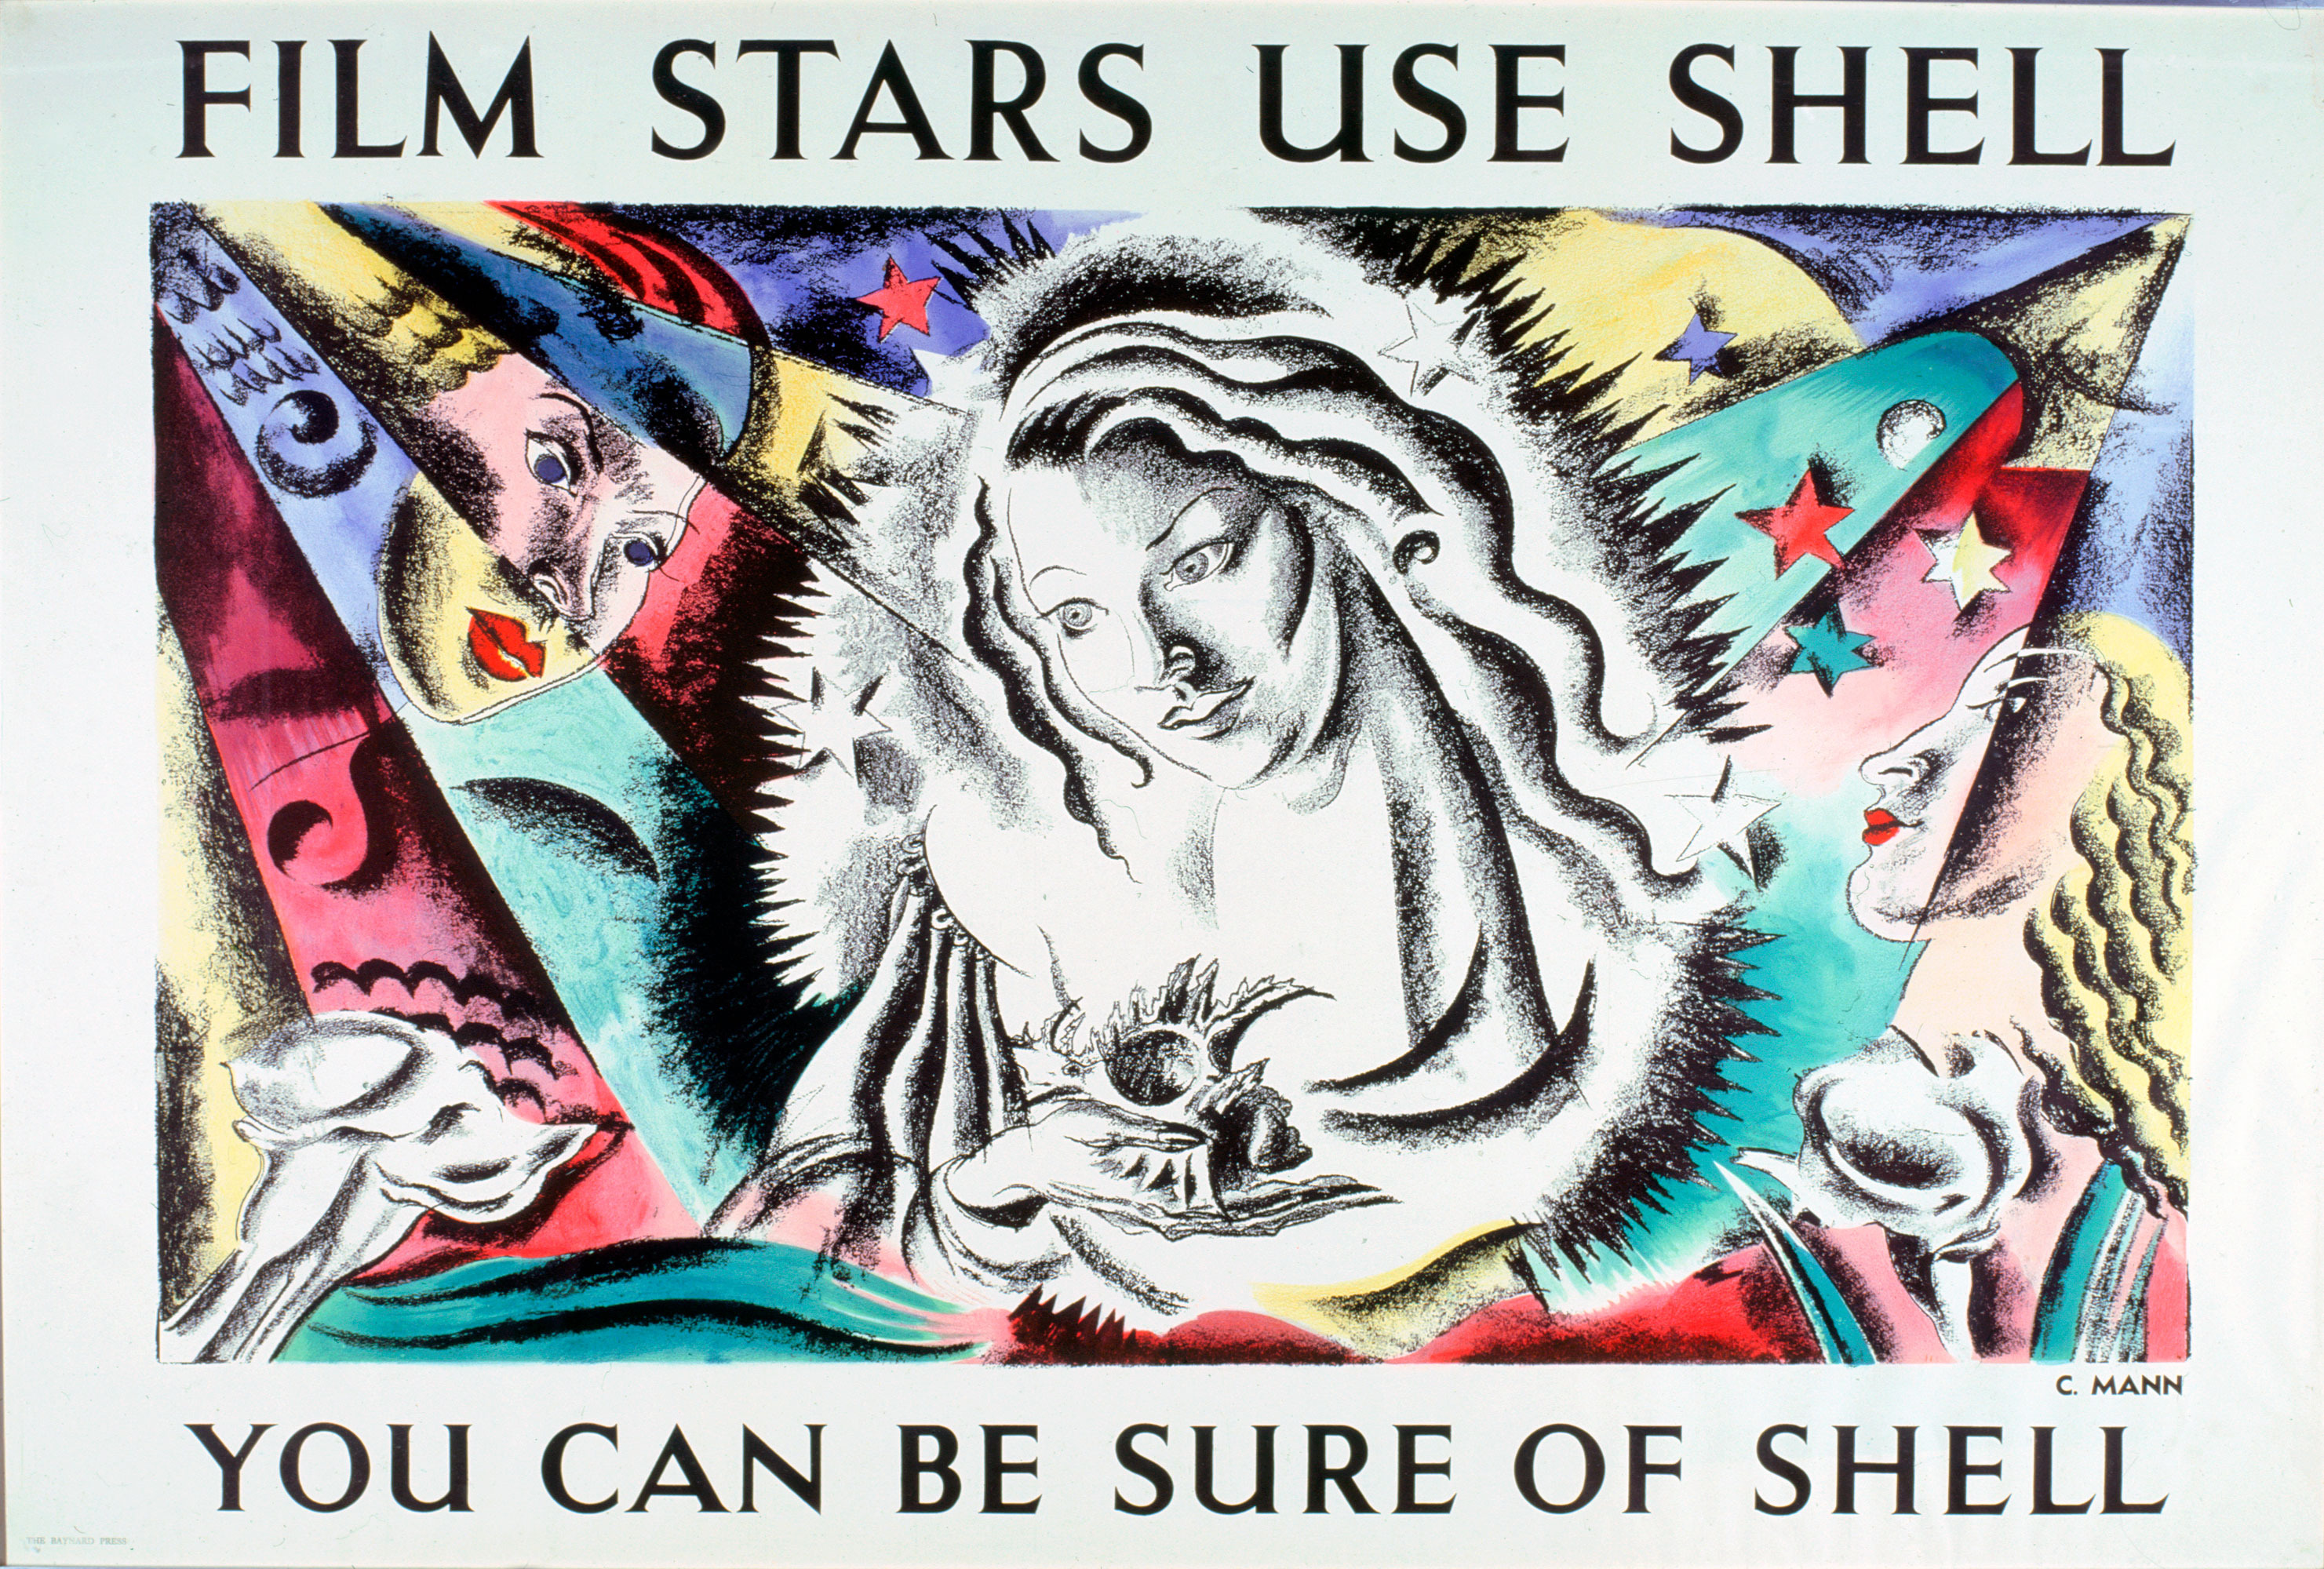 Shell poster number 525 Film stars use Shell (1938) by Cathleen Mann. A fairly abstract painting of a woman in spotlight, holding a shell, whilst two others look on.